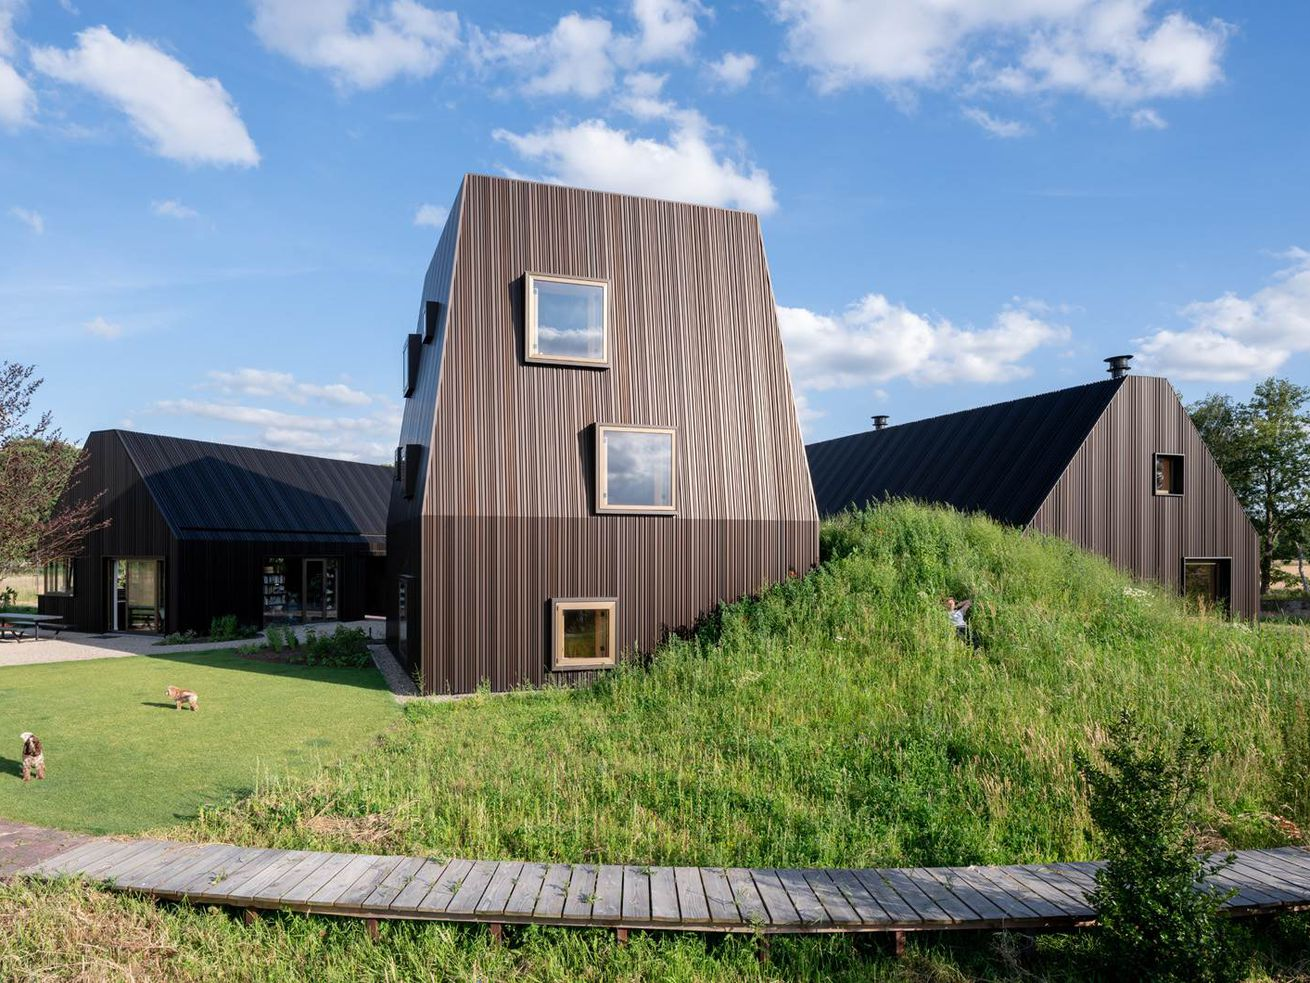 Dutch farmhouse designed to resemble a small village